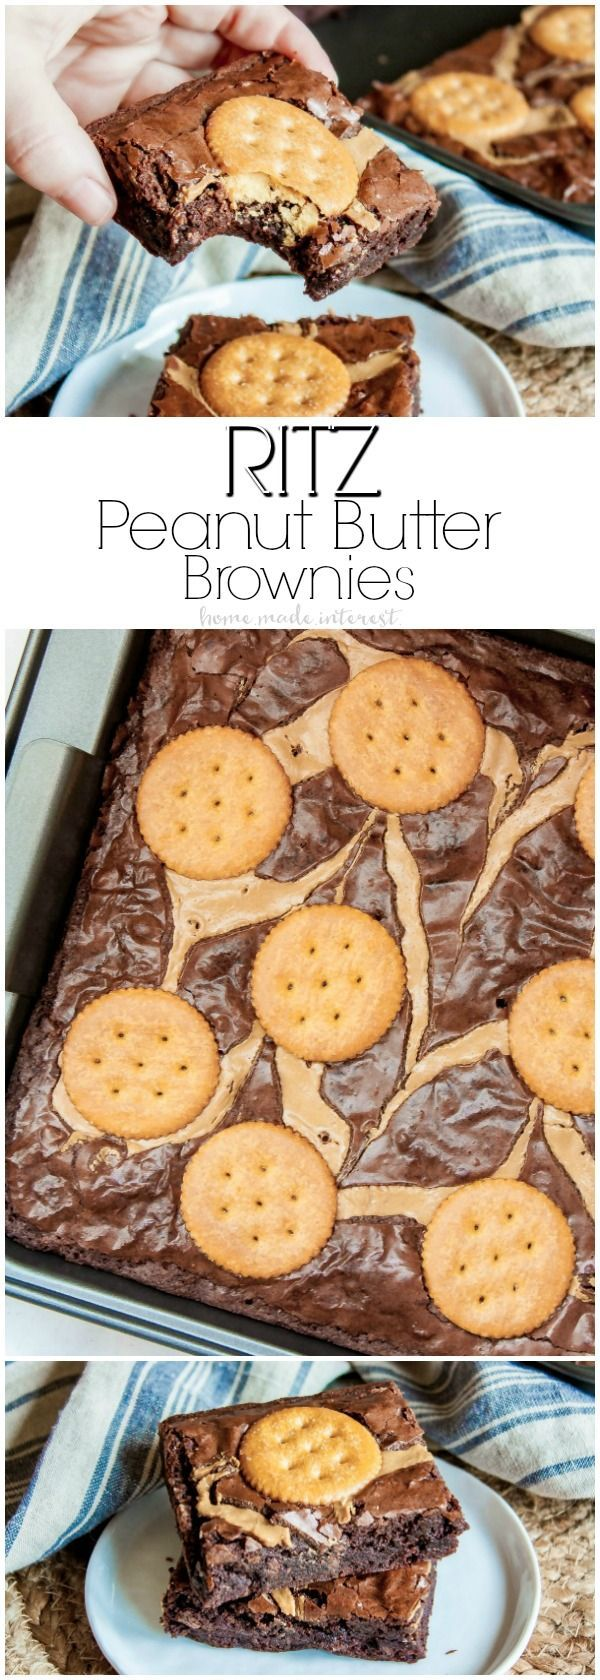 RITZ Peanut Butter Brownies | This sweet and salty dessert recipe is super easy to make and so good!   There will be live demos with RITZ crackers and Peter Pan®️️️ Creamy Peanut Butter in Walmart on 4/15! Make sure you stop by to get a free recipe handout with coupon, and spin for a chance to win a Walmart gift card or a free box of RITZ! #RITZpiration #ad